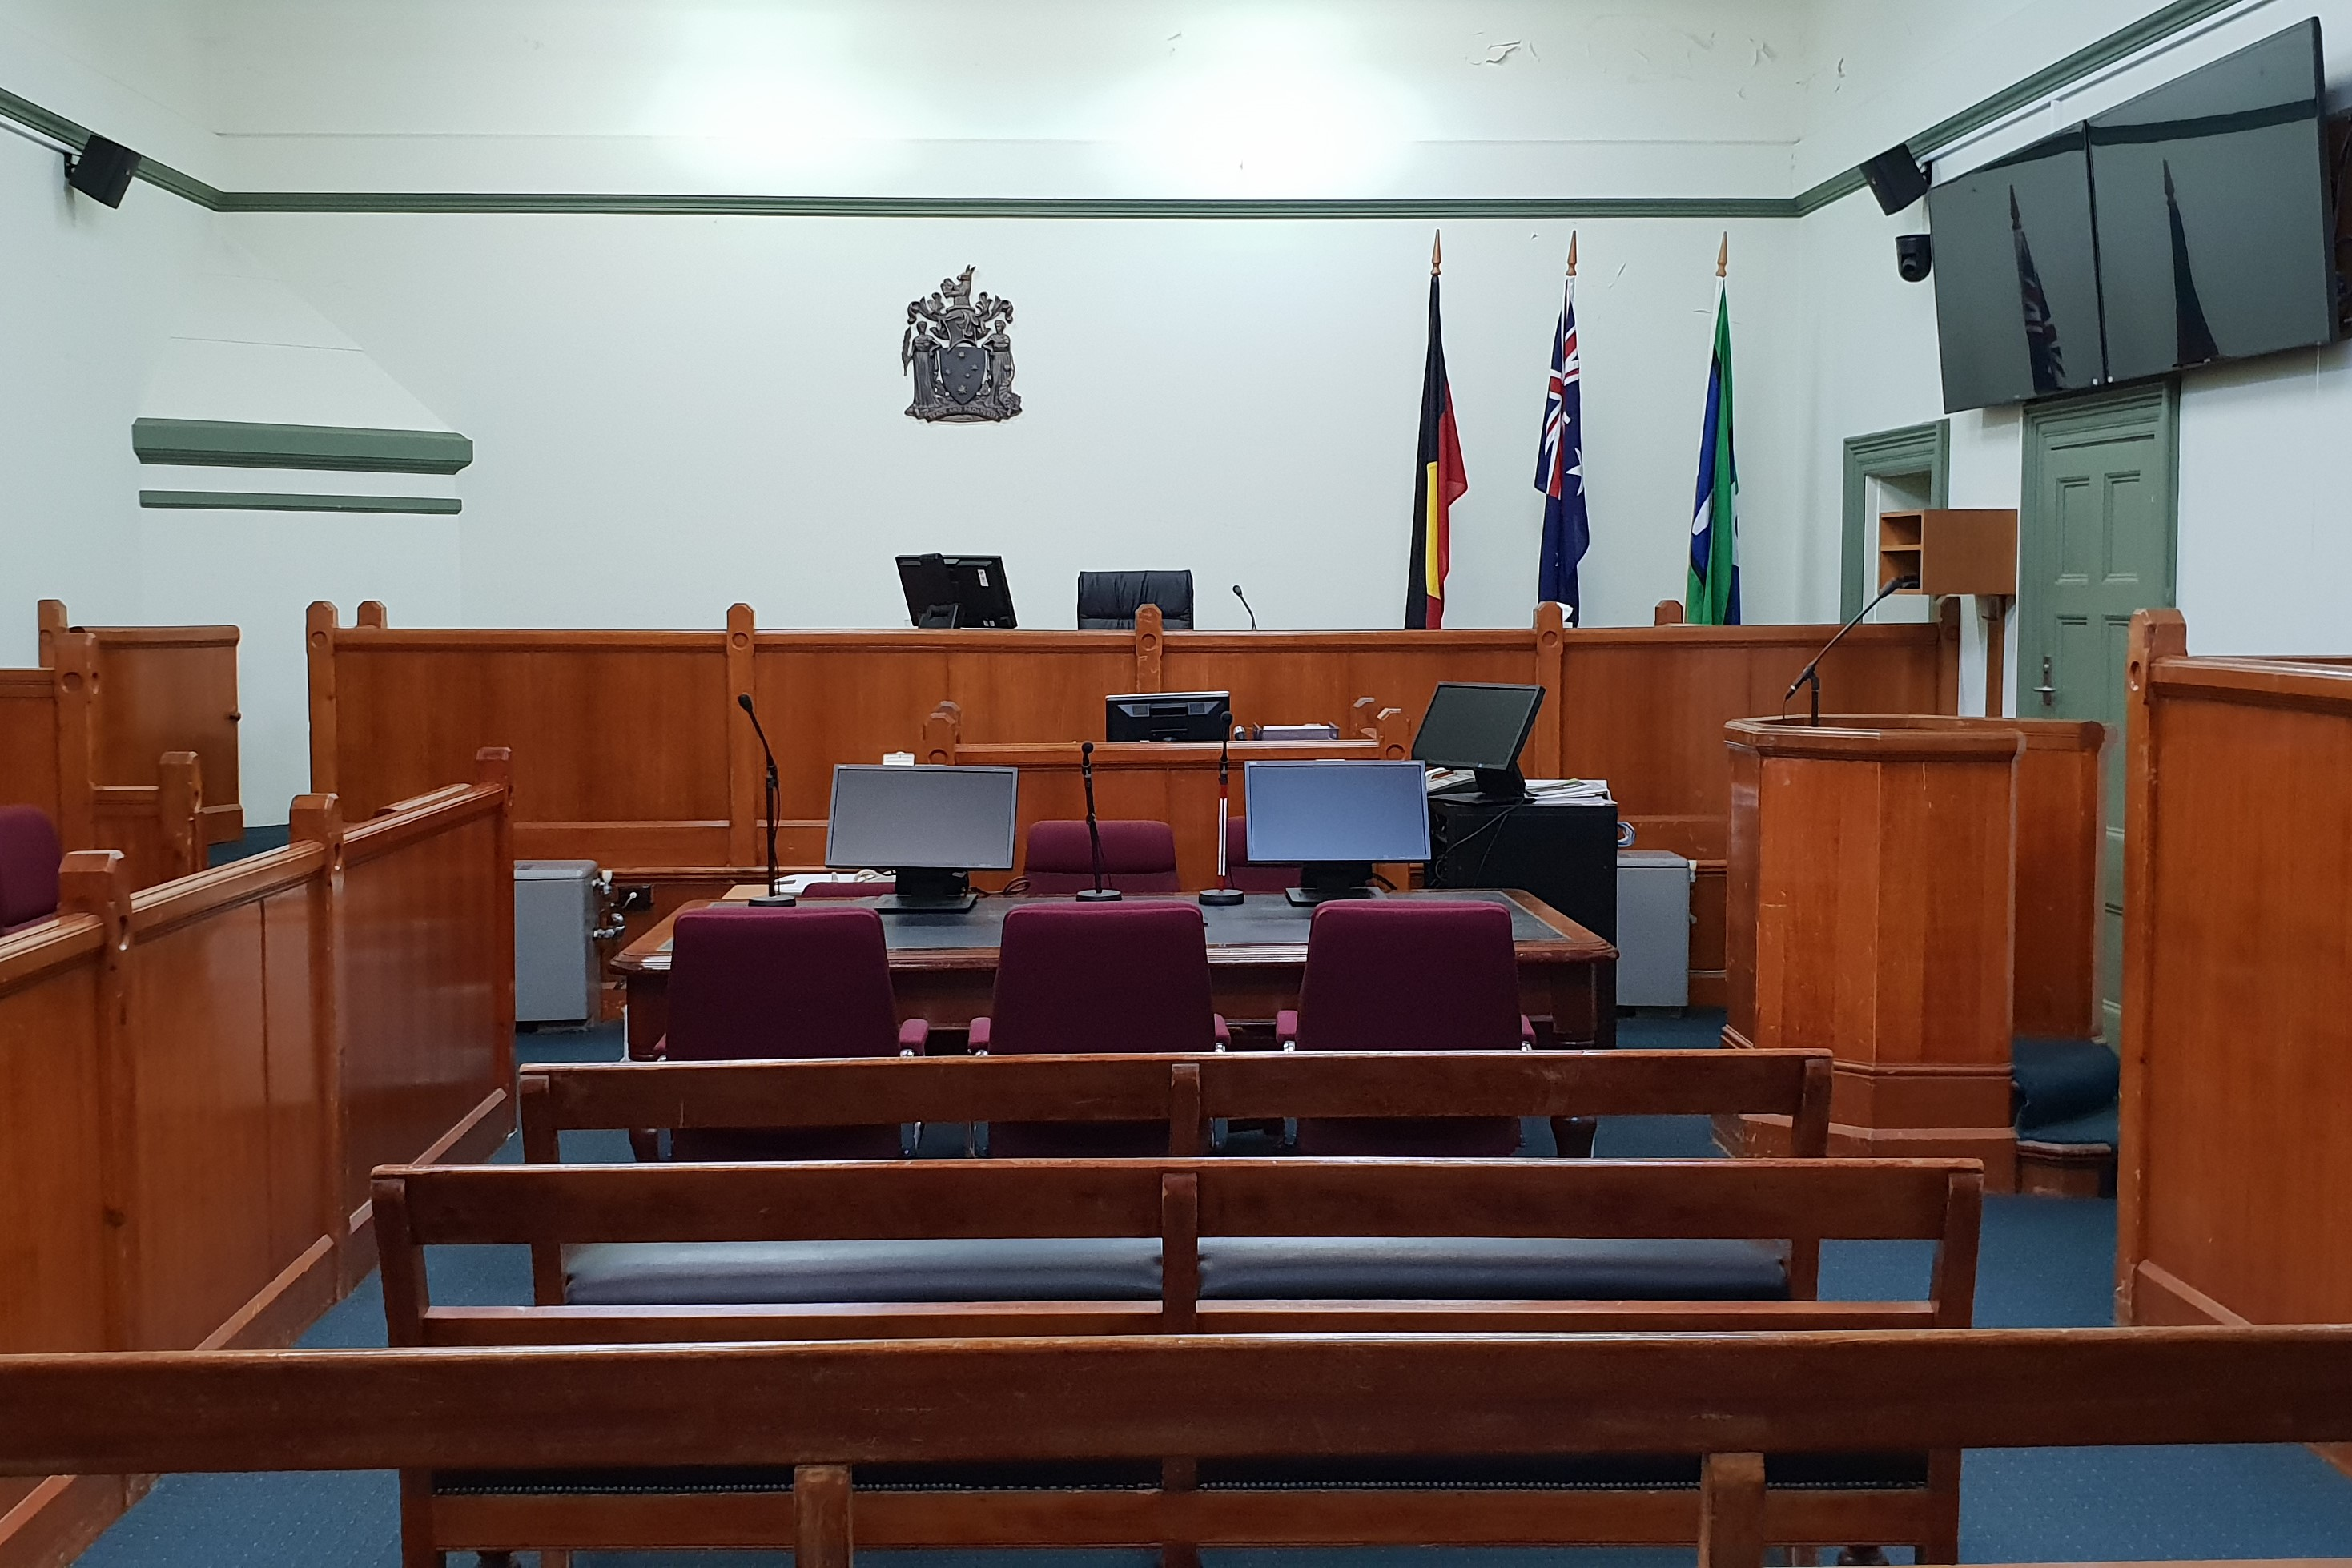 Courtroom inside Hamilton Magistrates' Court